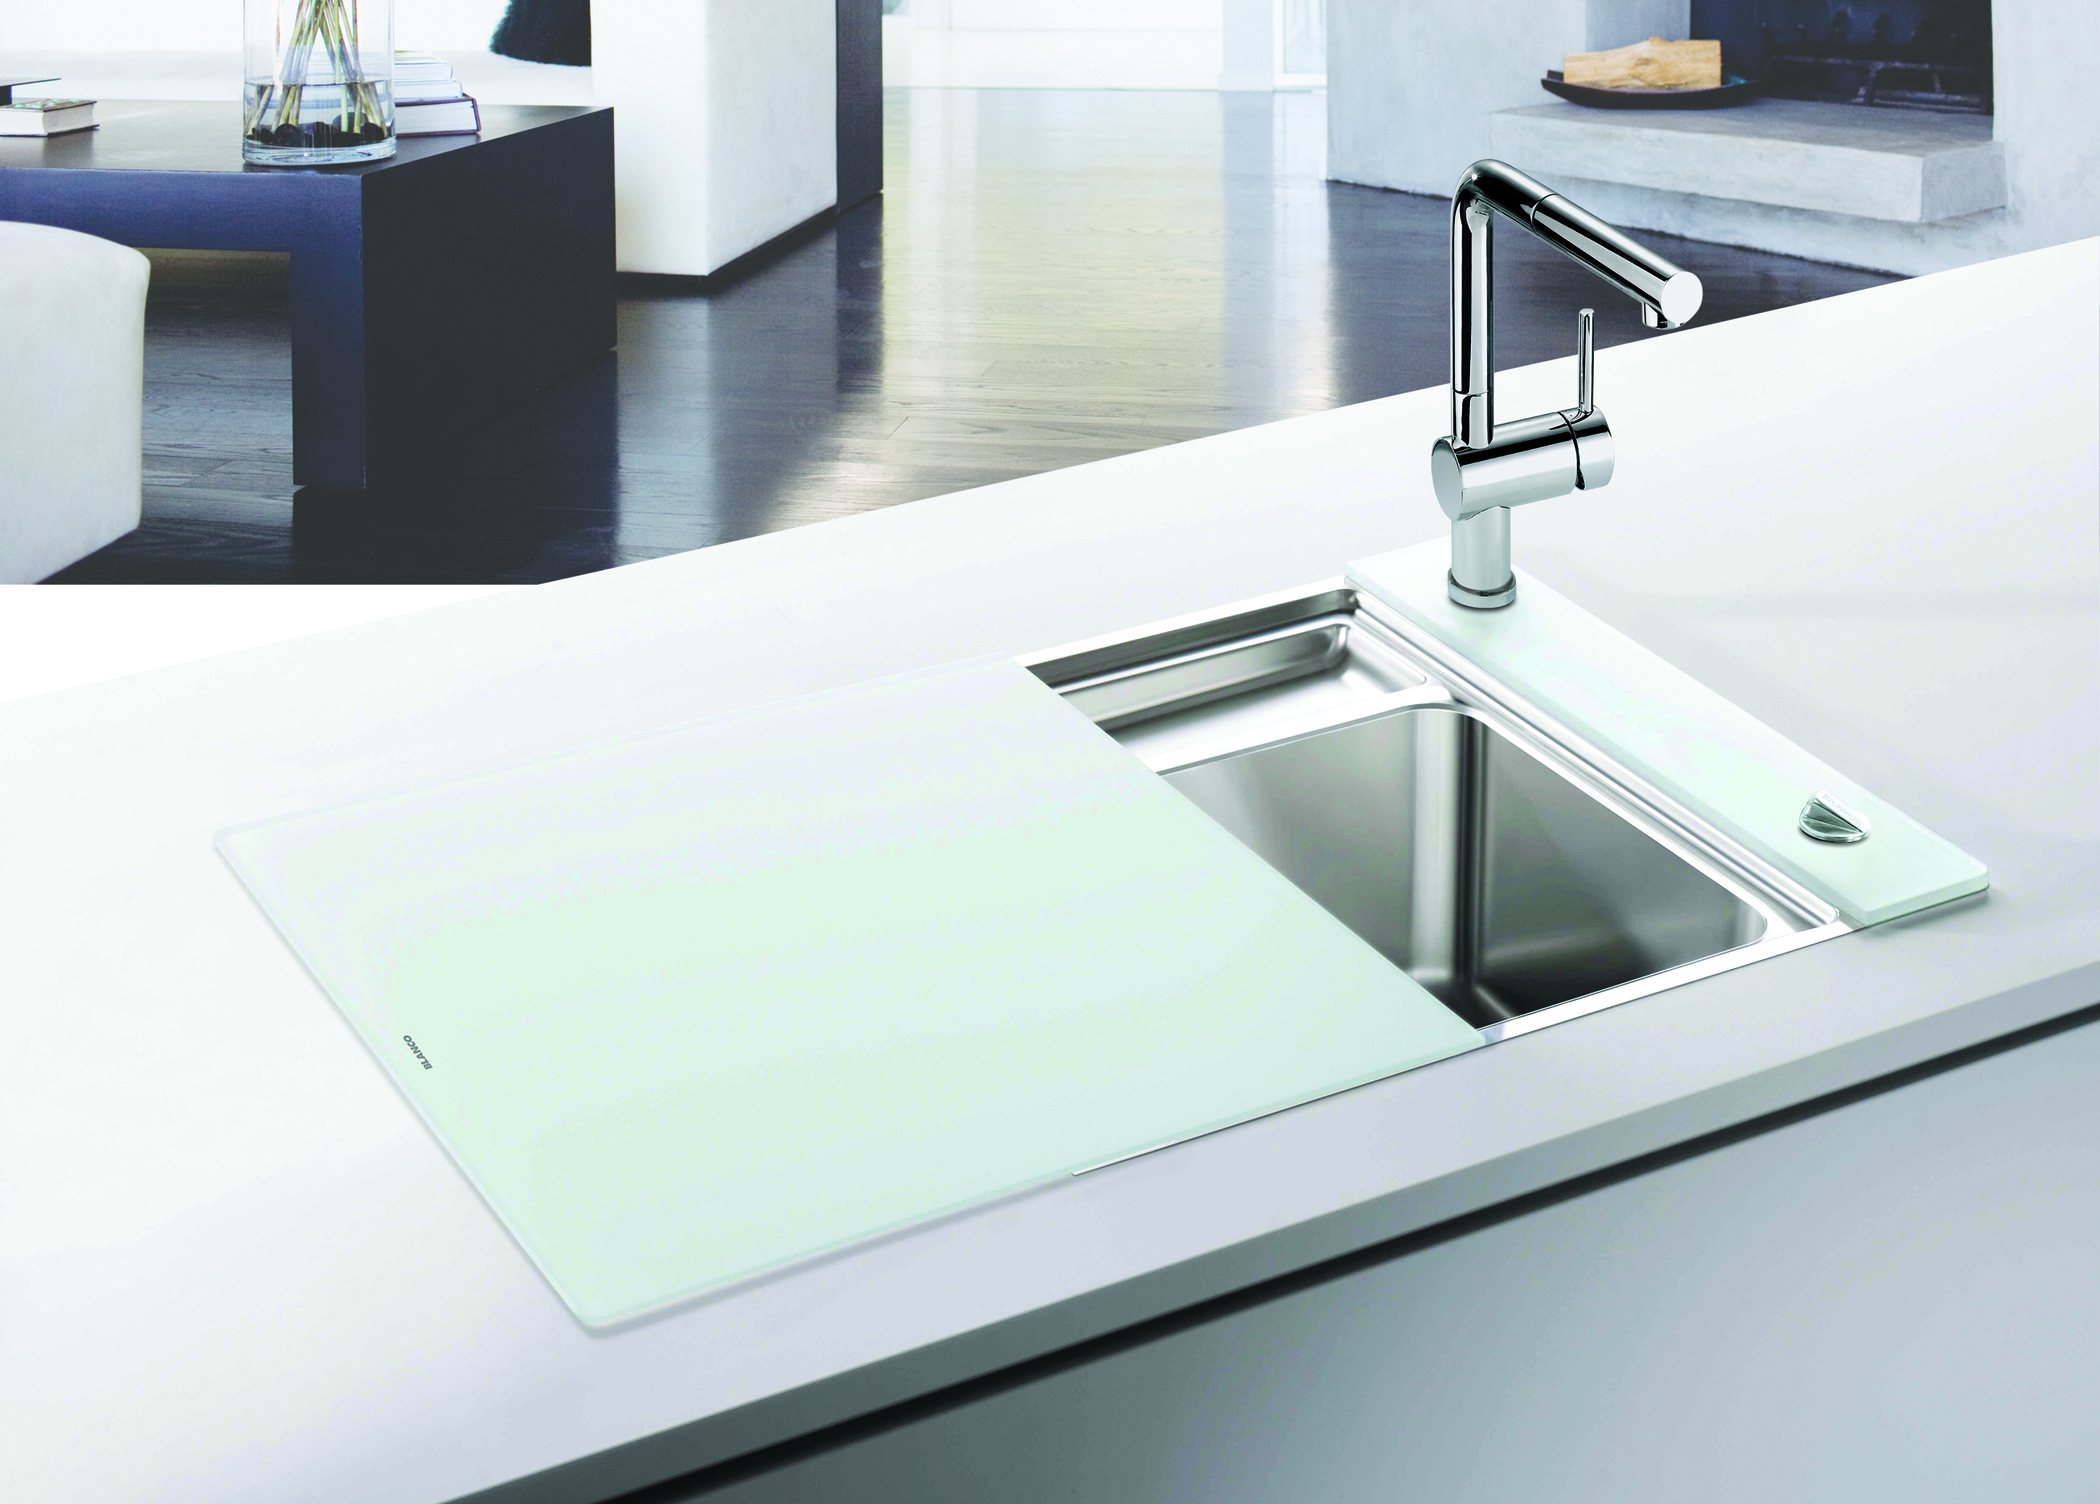 Blanco Sinks And Faucets : Top Products for 2012: BLANCO Sinks and Faucets